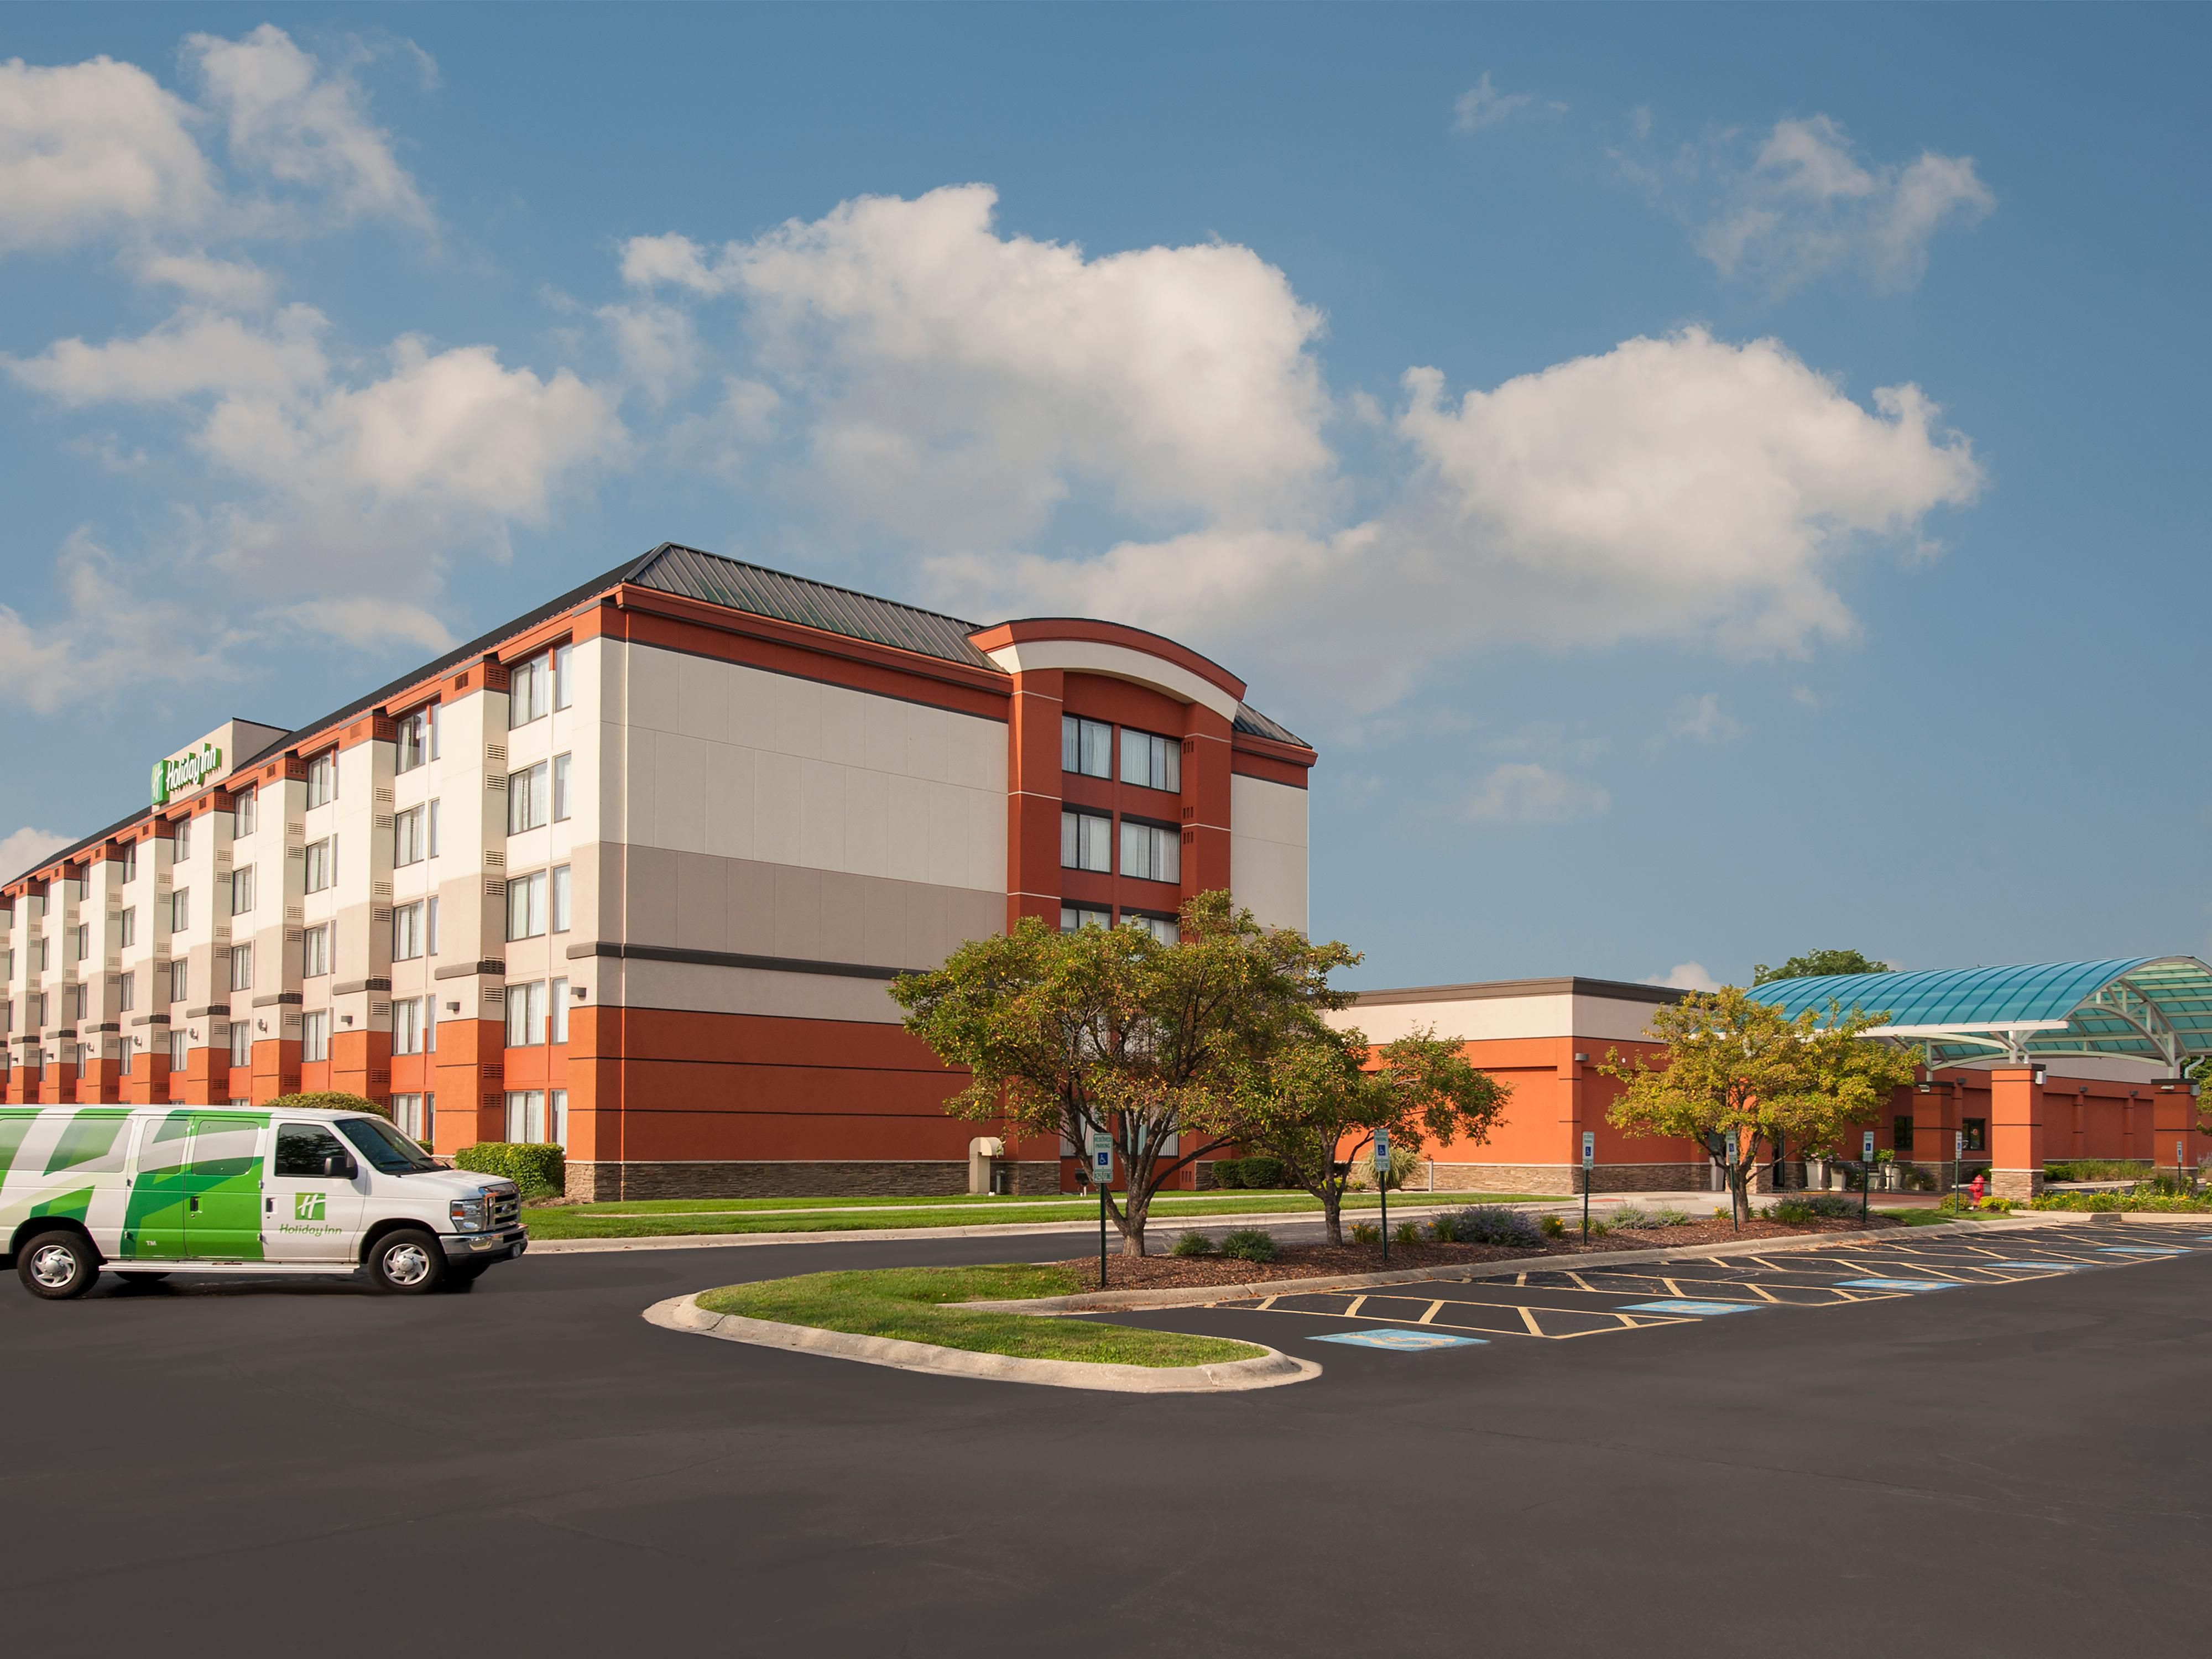 Holiday Inn Chicago West Itasca Located in Itasca, IL